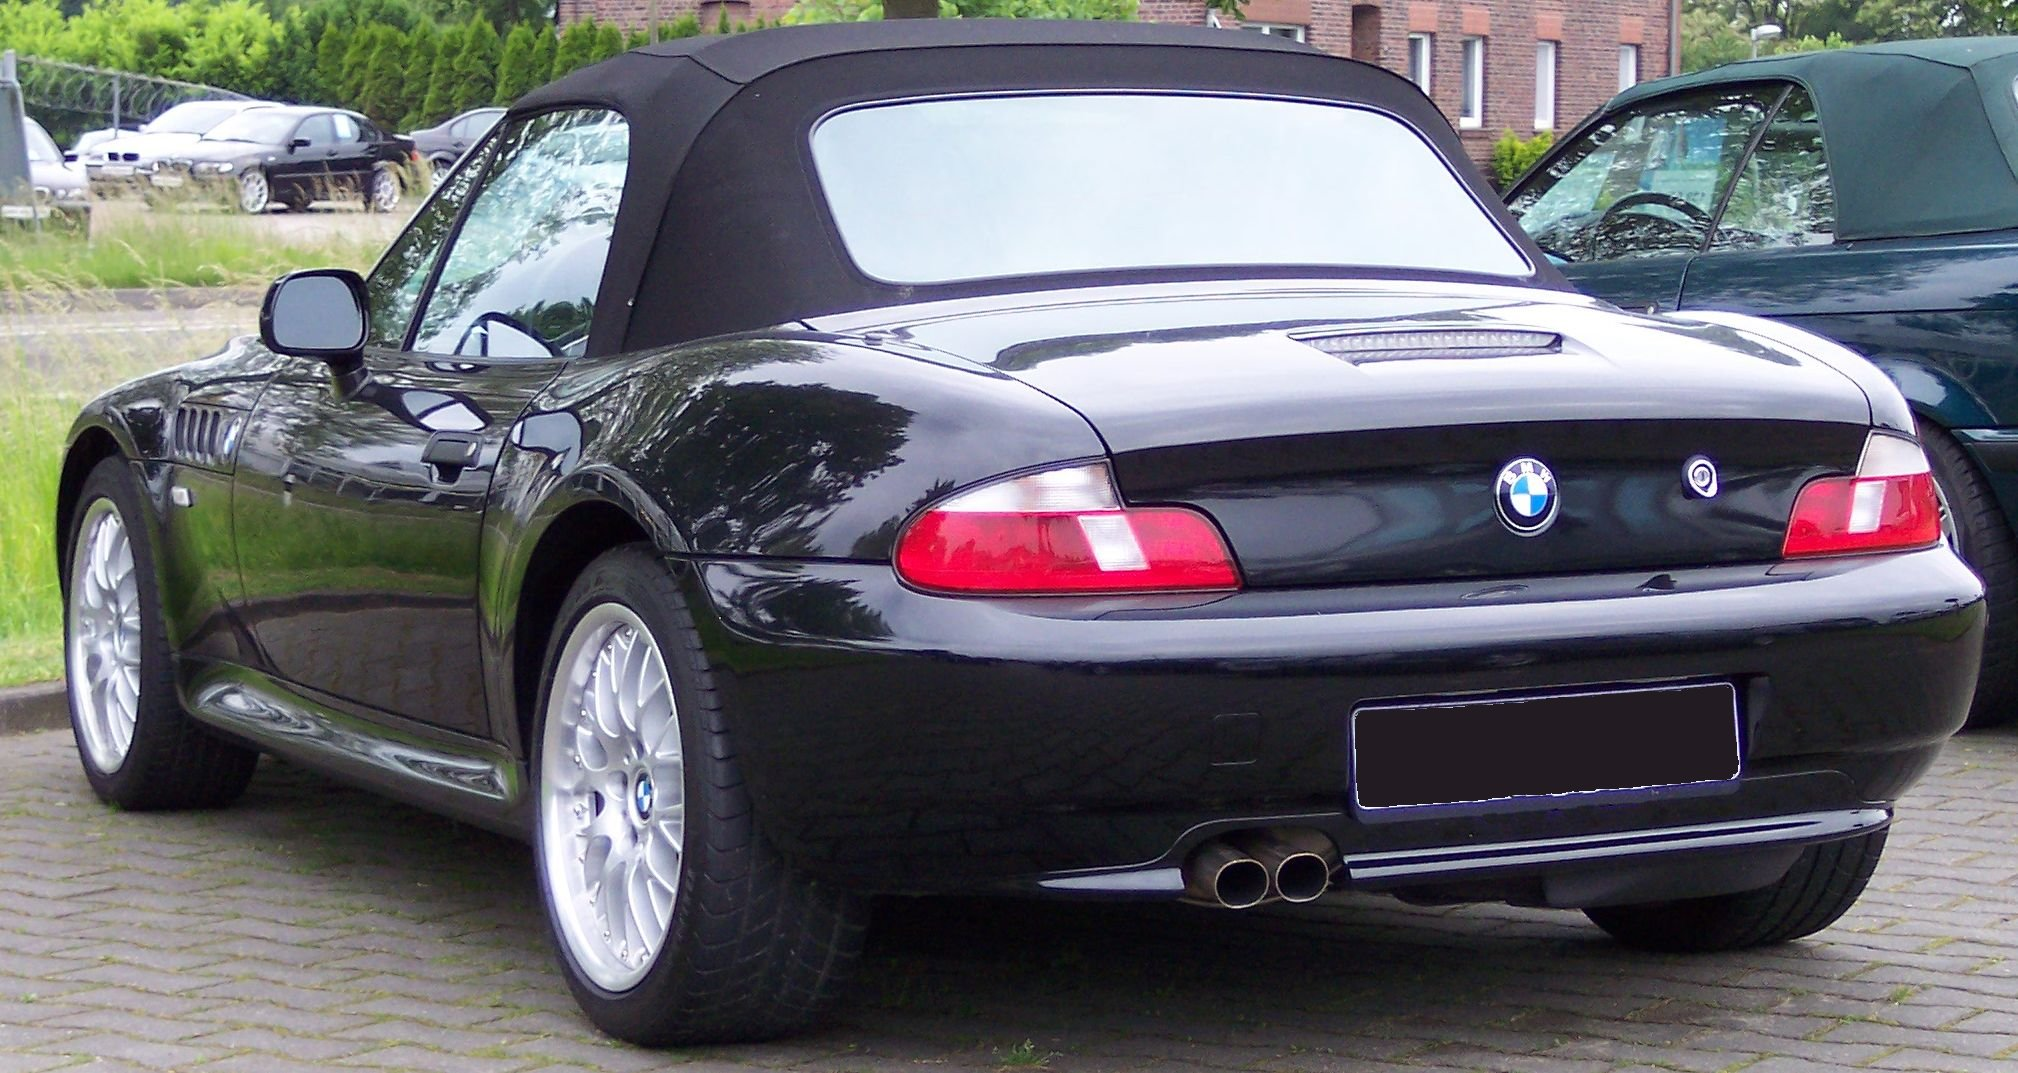 file bmw z3 black wikimedia commons. Black Bedroom Furniture Sets. Home Design Ideas